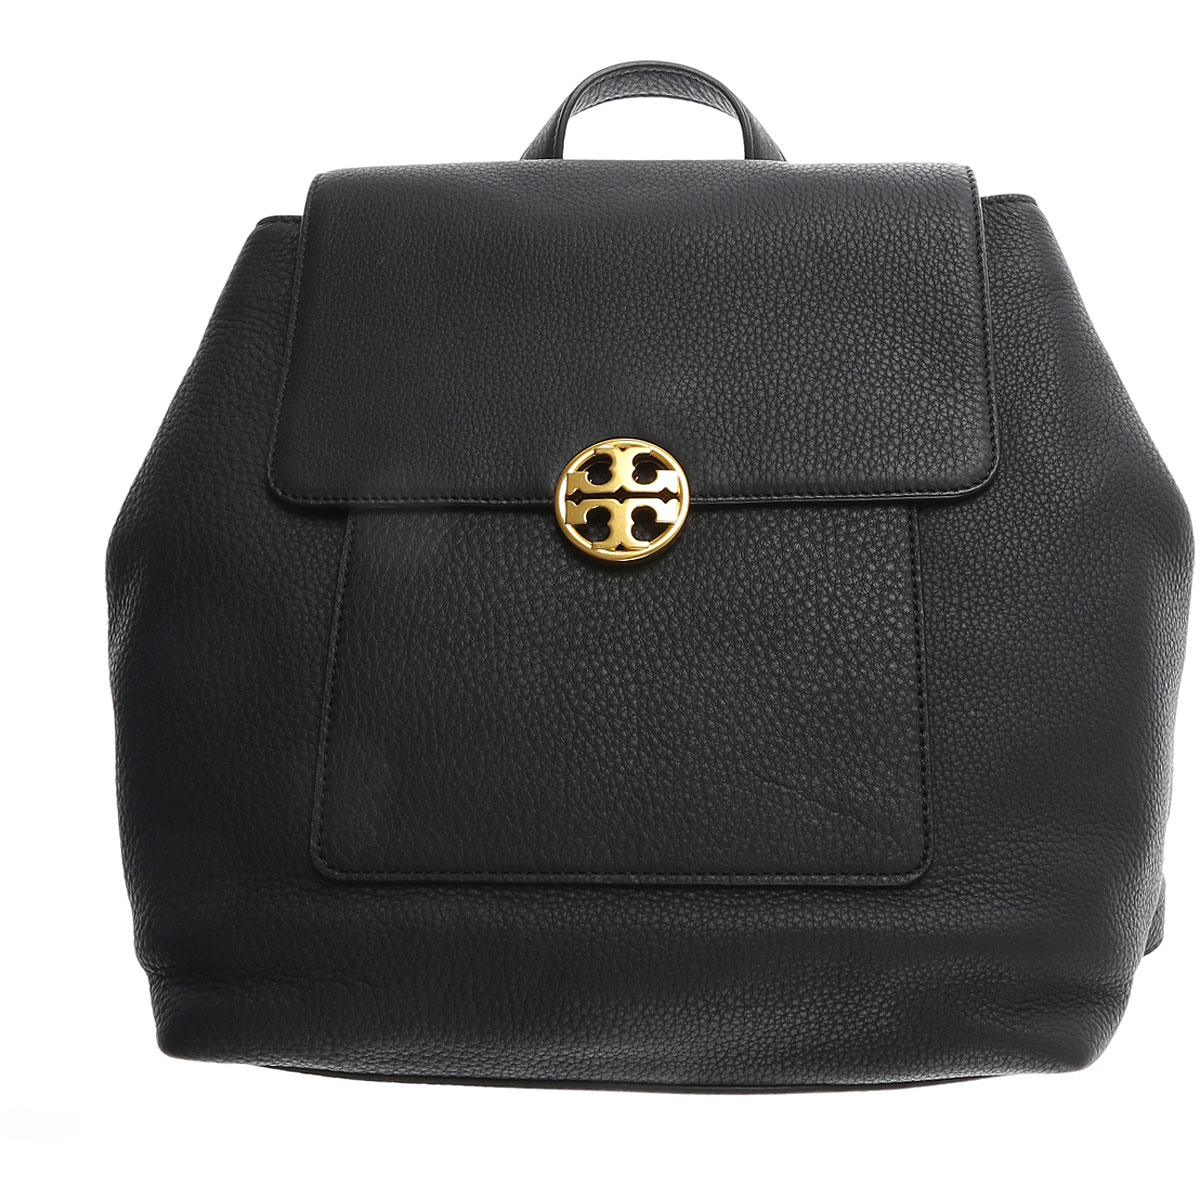 Image of Tory Burch Backpack for Women On Sale, Black, Calfskin Leather, 2017